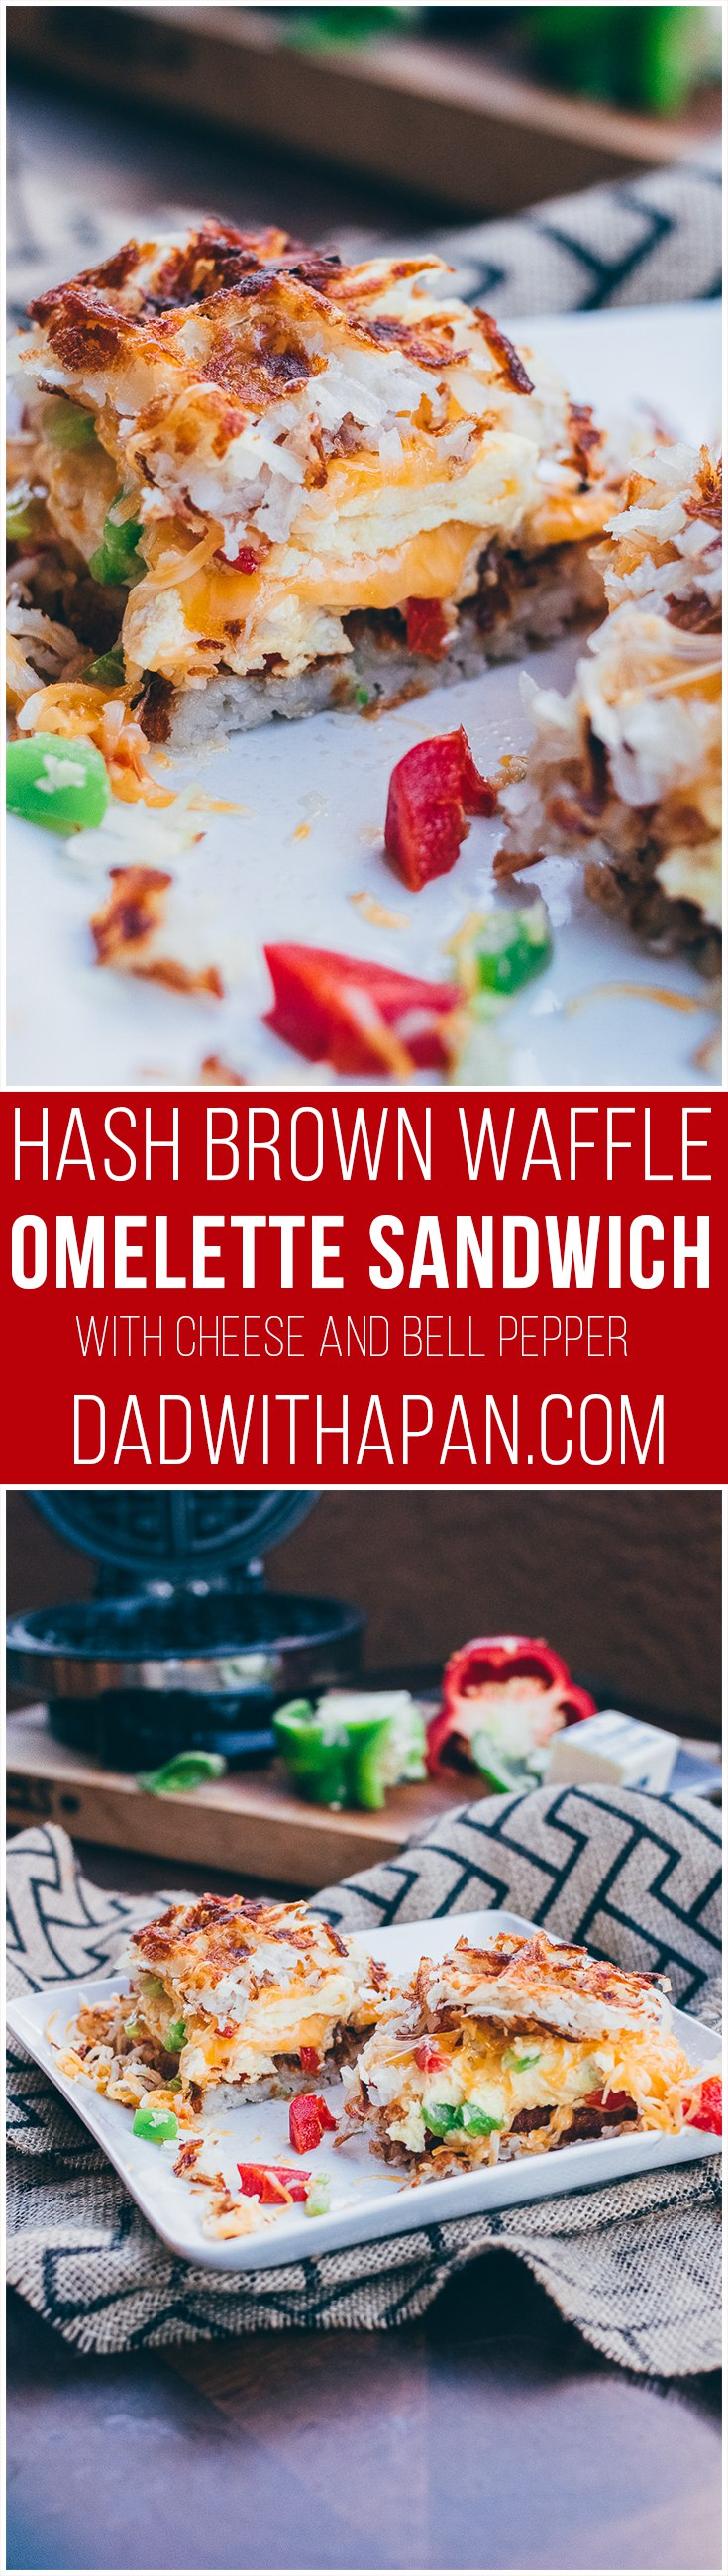 Omelette Hashbrown Waffle Sandwhich